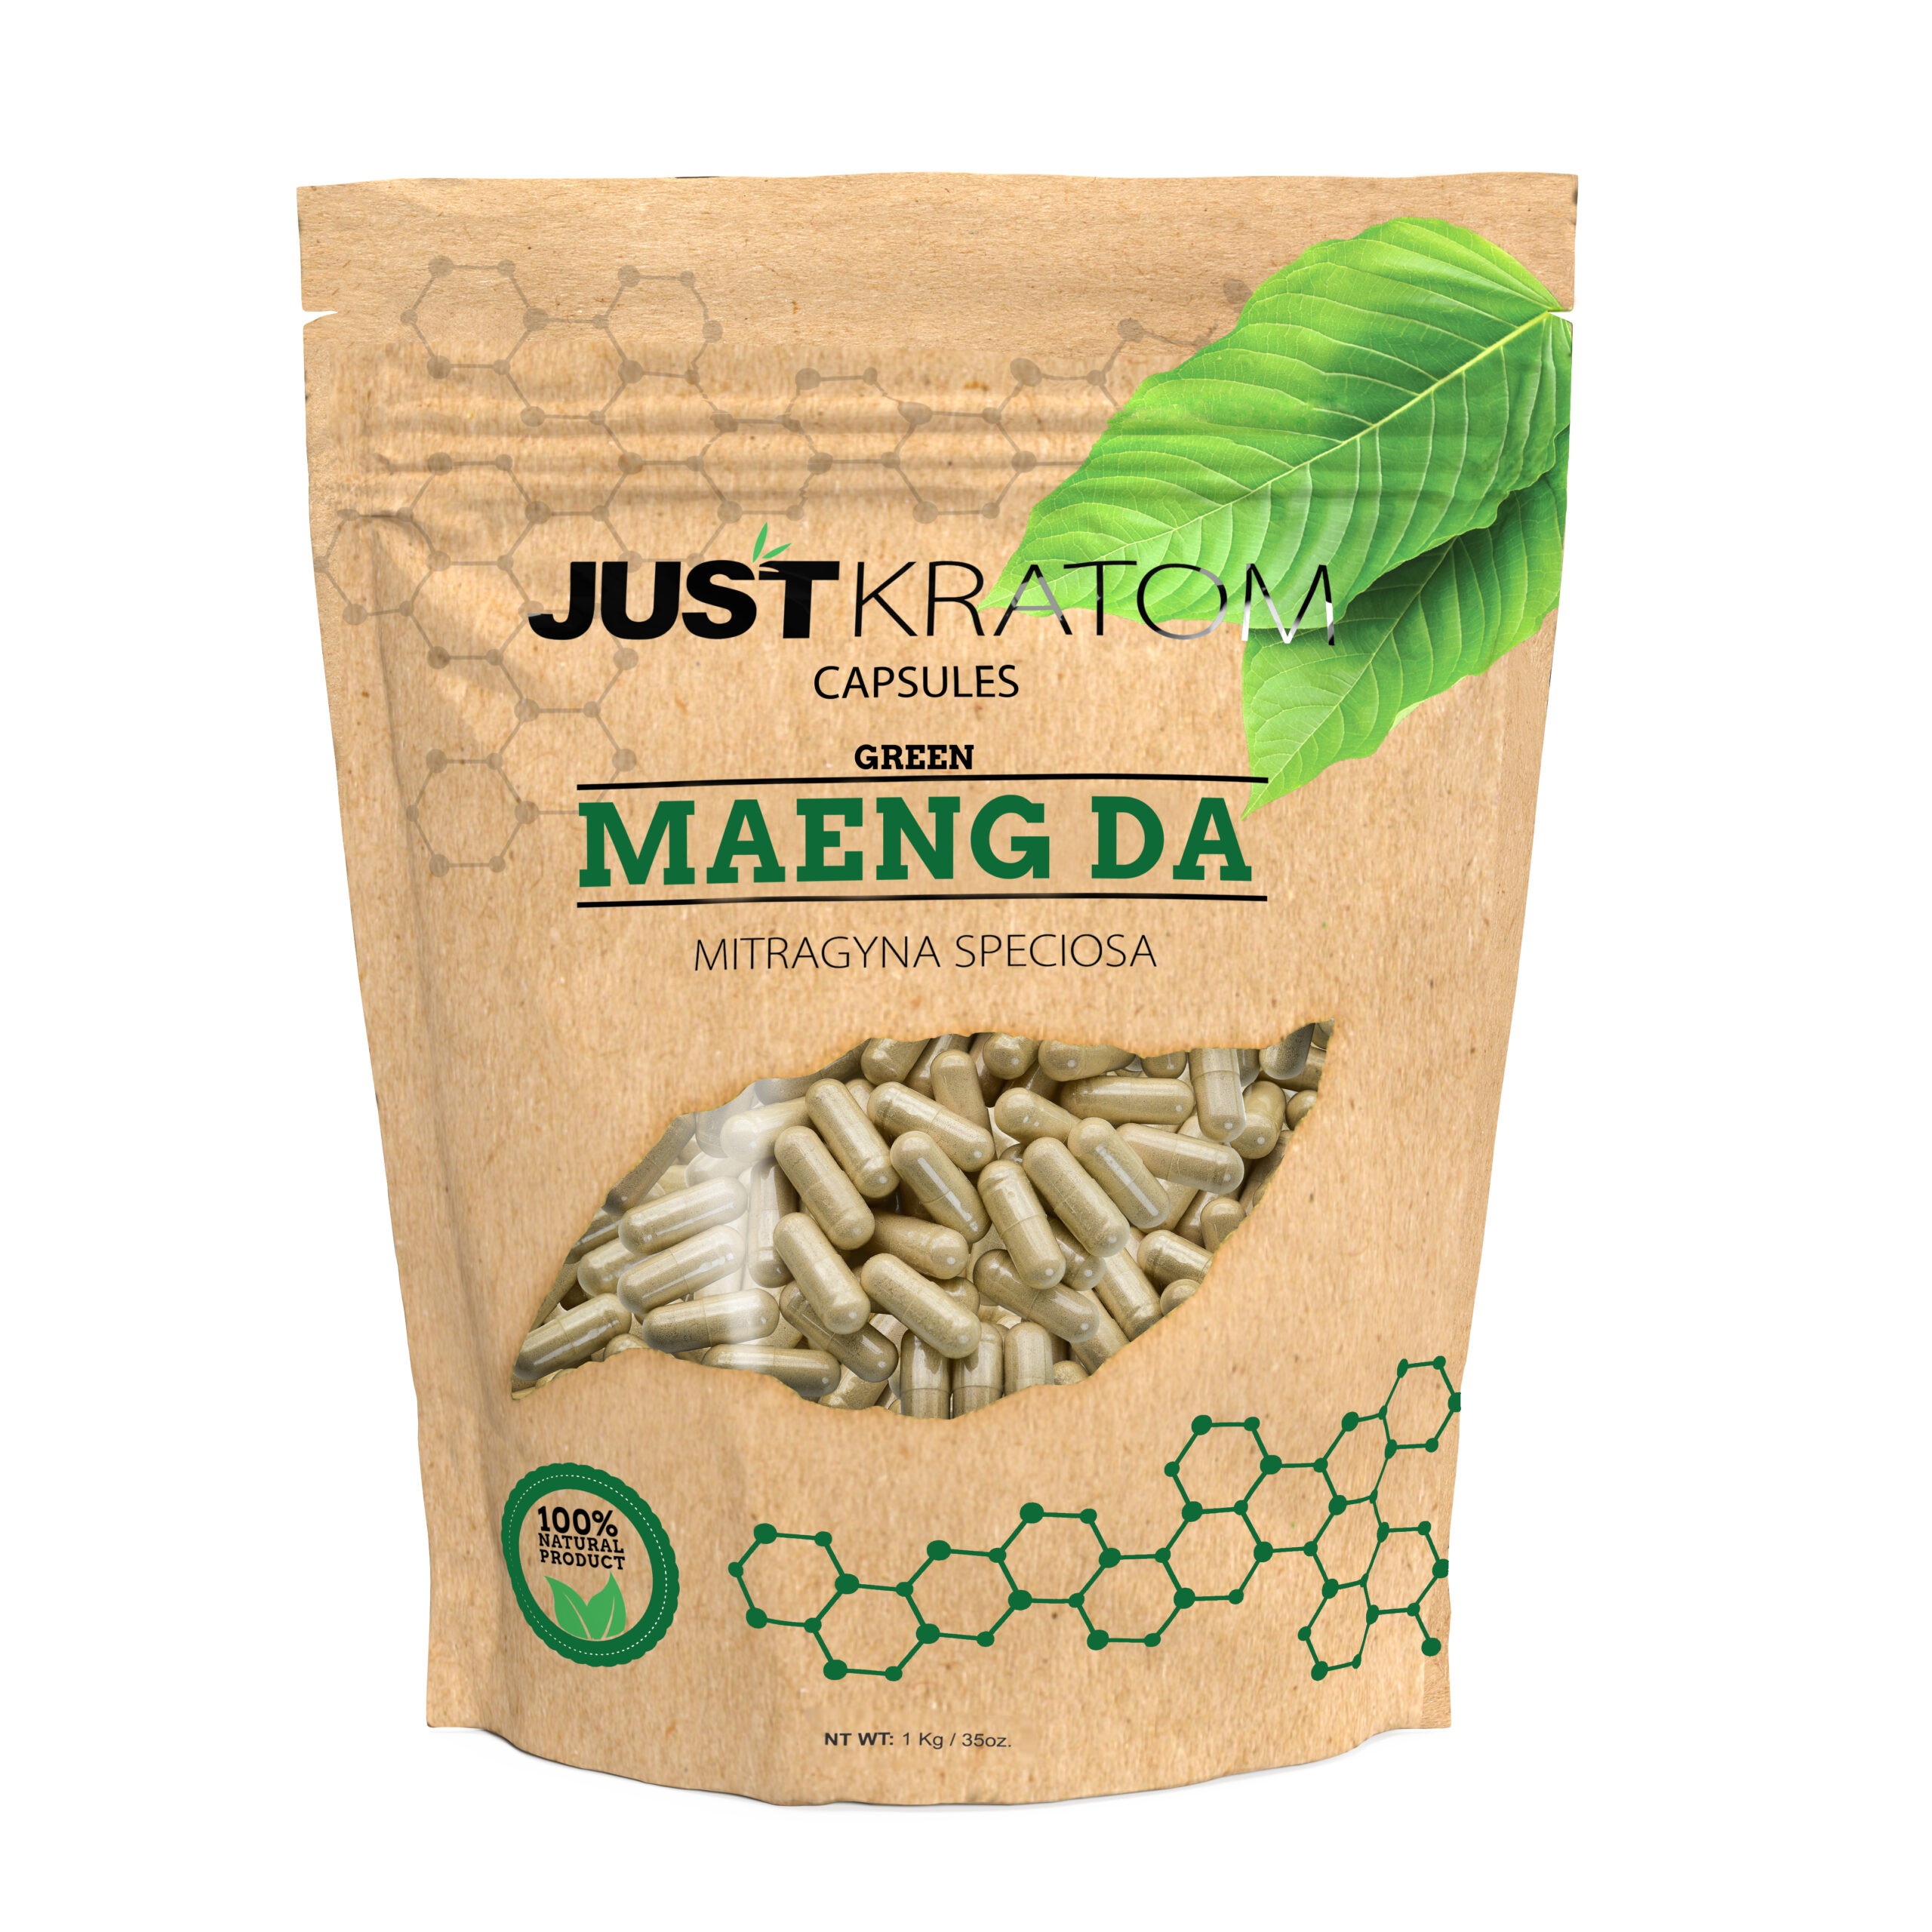 Where To Buy Kratom Reddit